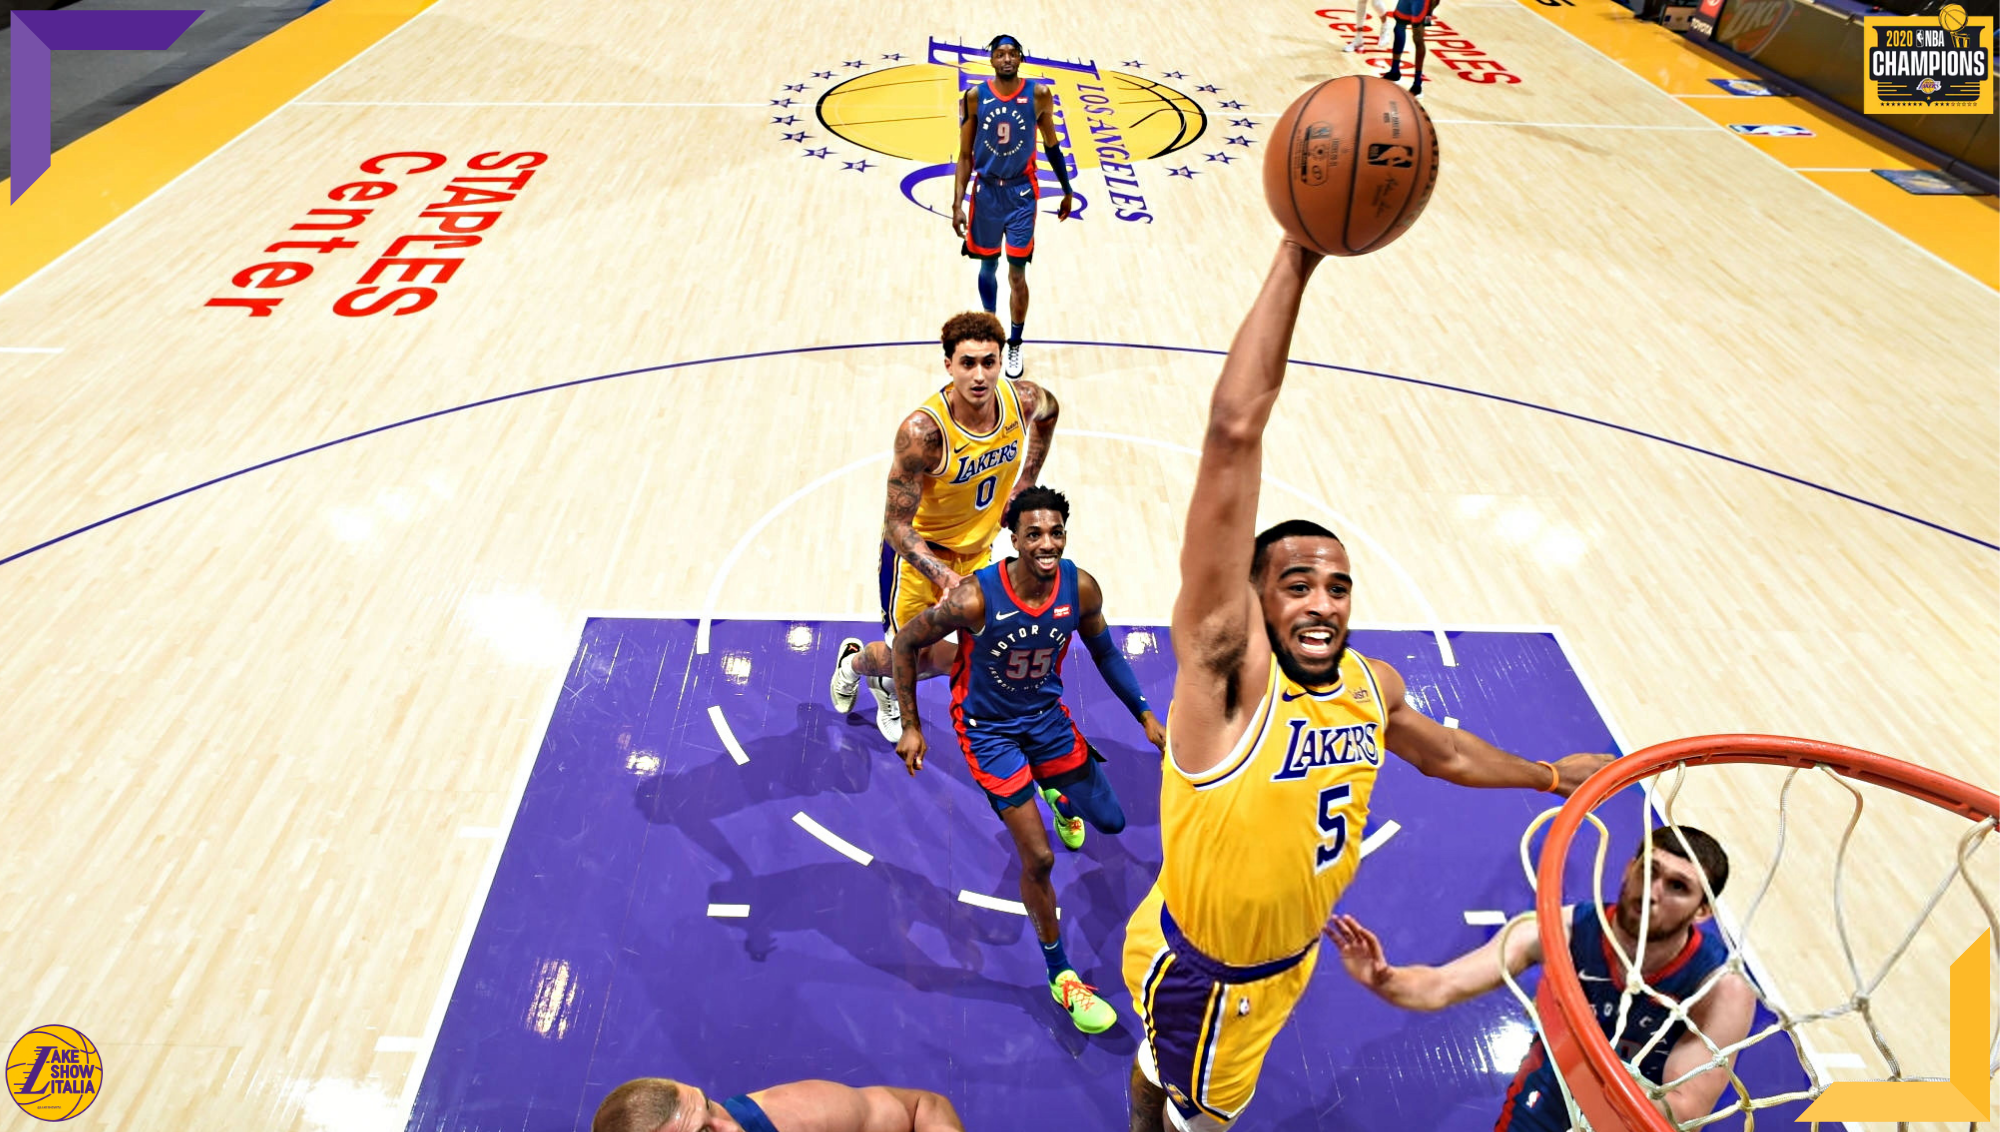 Talen Horton-Tucker, Los Angeles Lakers shoots vs Detroit Pistons